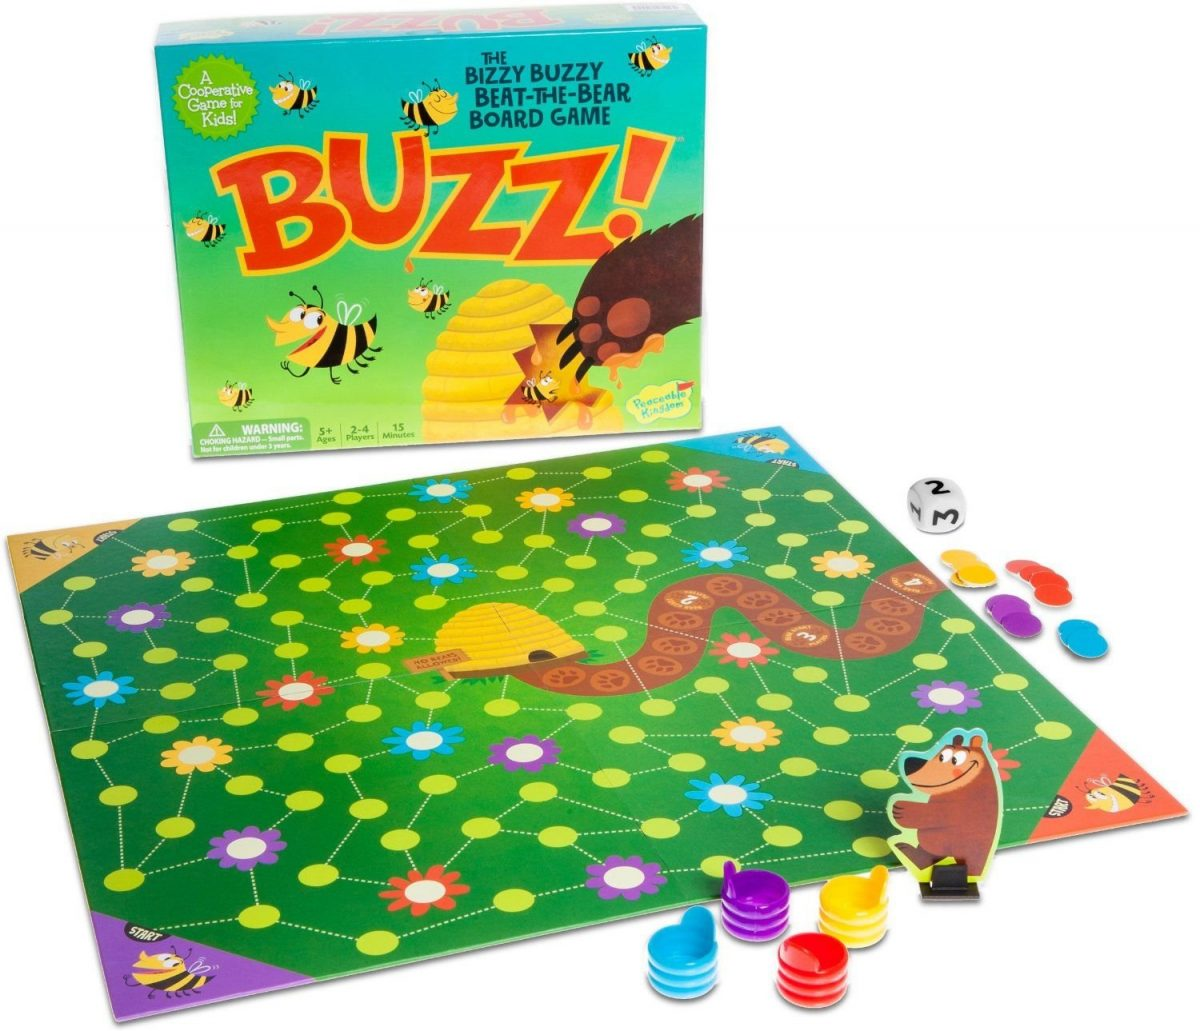 X Board Games You Need For Your Next Family Game Night